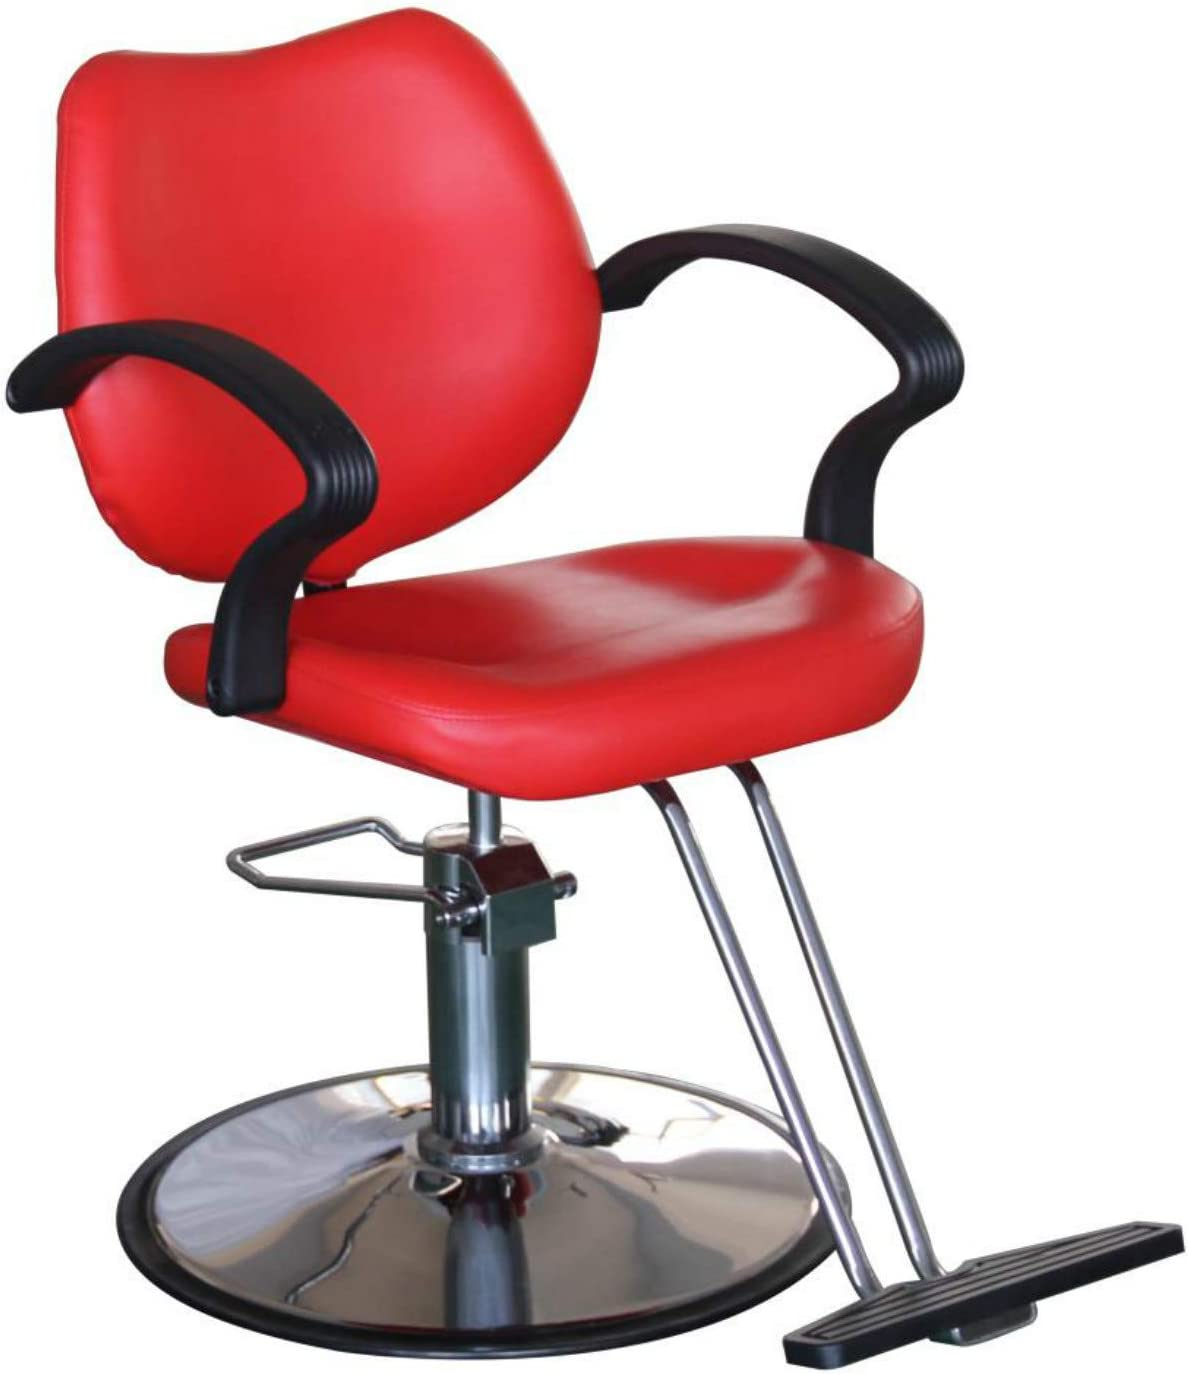 Salon Style Tattoo Spa Beauty Equipment Barber Chair Styling Chair Hydraulic Heavy Duty Leather Swivel Classic Hair Salon Chair for Hair Stylist Women Man,Red: Kitchen & Dining